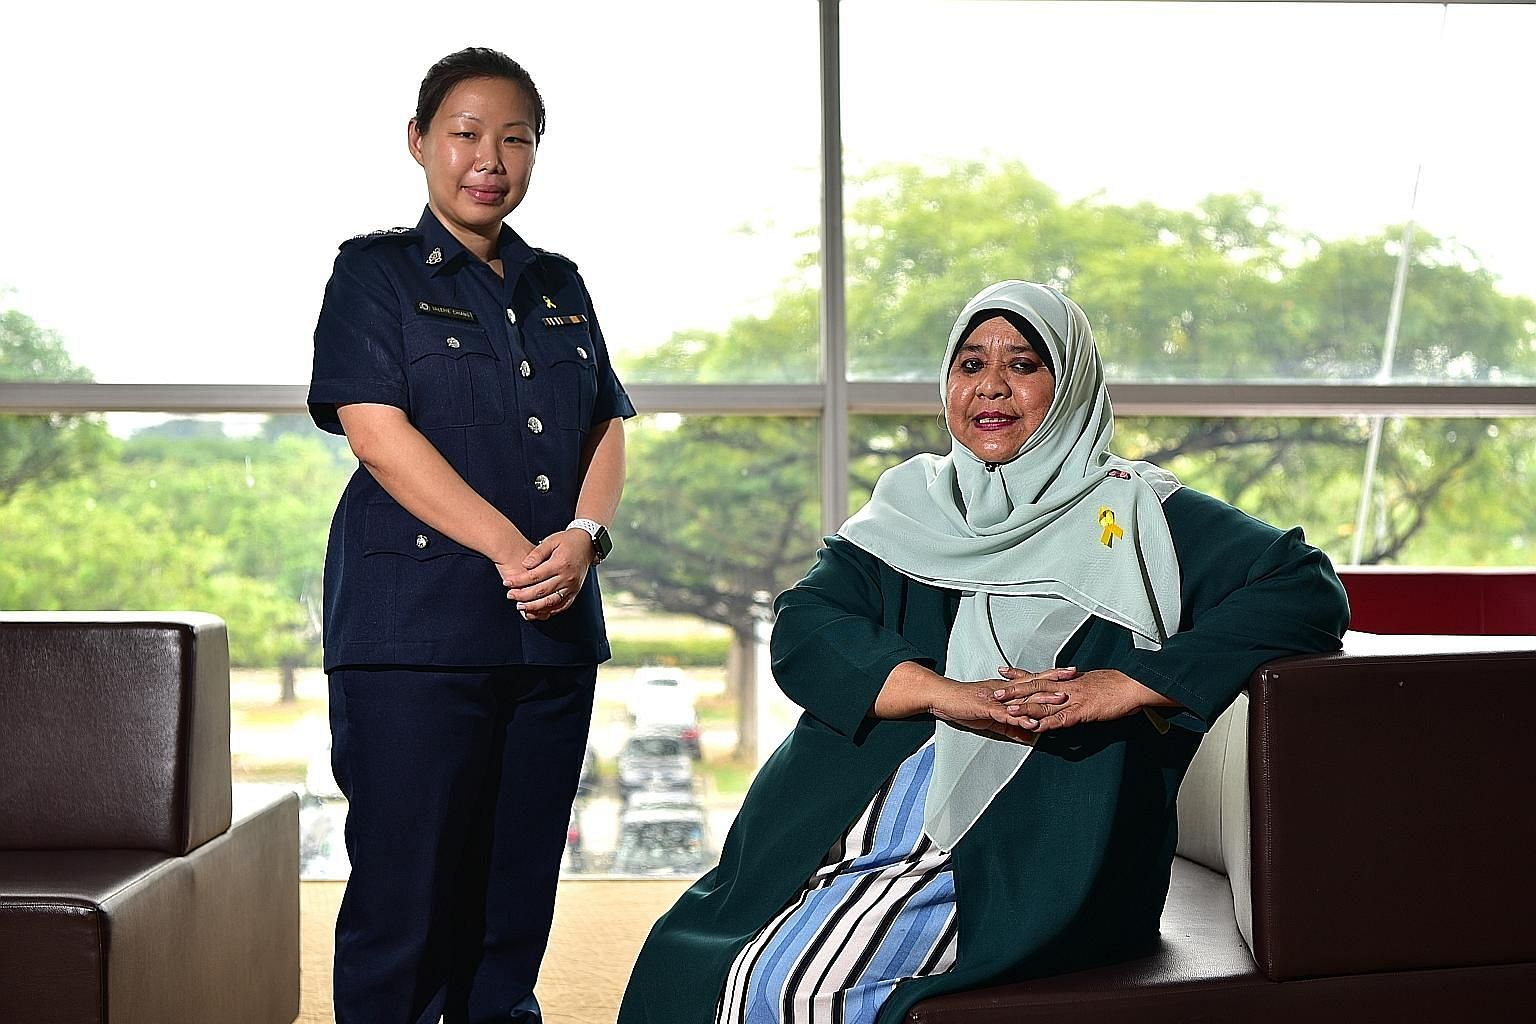 Superintendent Valerie Chiang, senior assistant director, community and family policy branch of the Singapore Prison Service's rehabilitation and reintegration division; with Ms Suzana Ahmad, Yellow Ribbon Champion, Tampines Changkat division, at yes